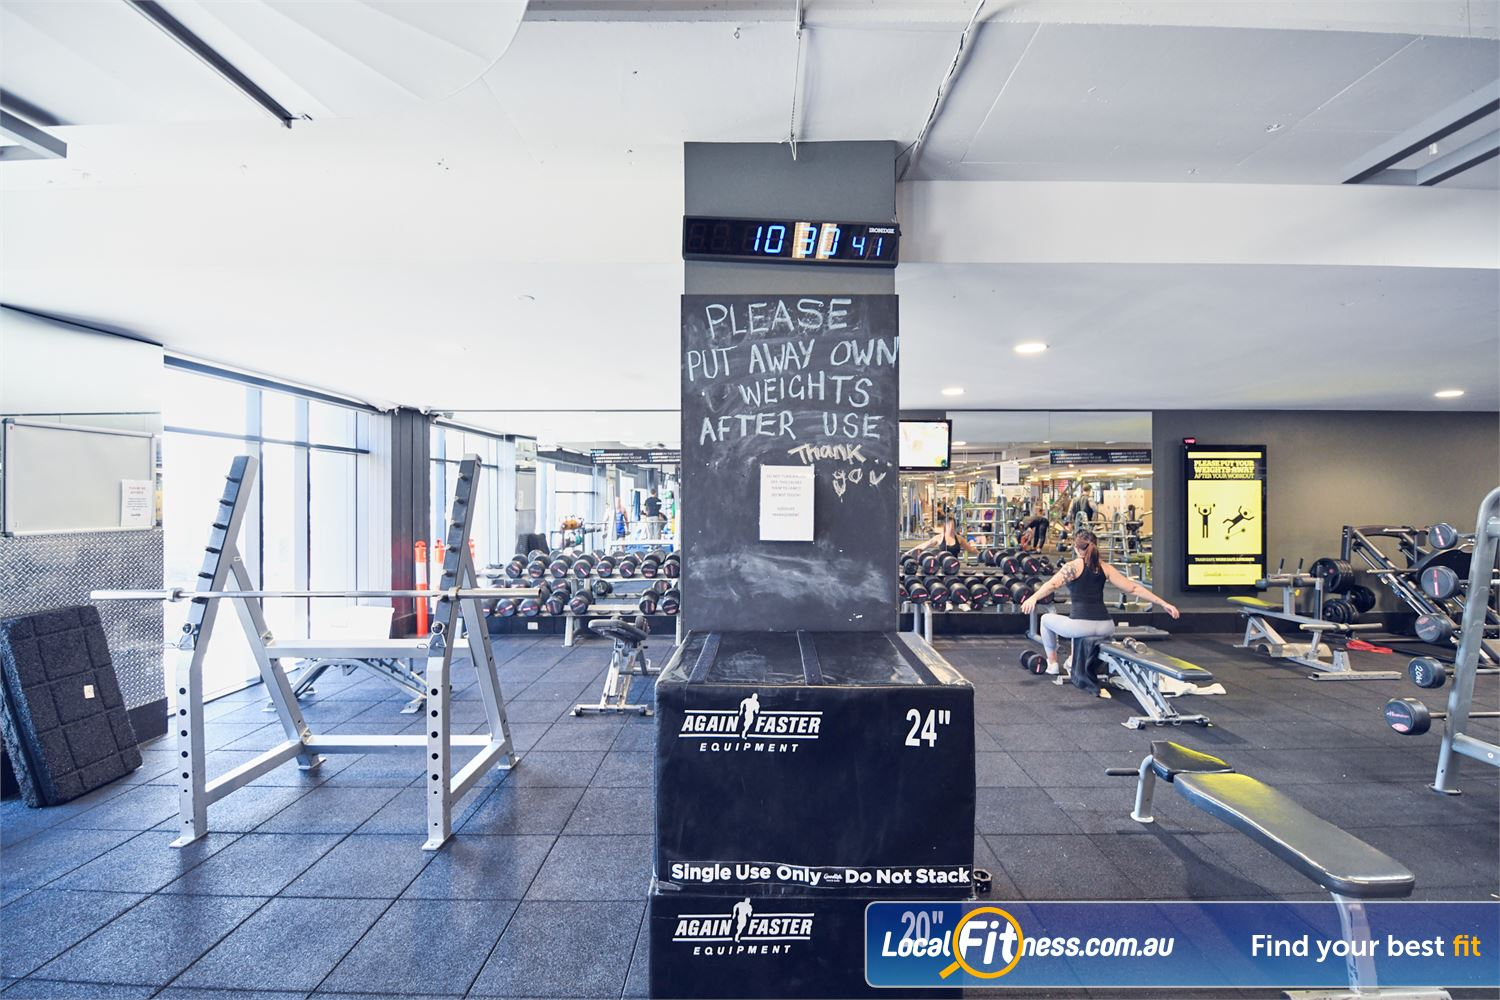 Goodlife Health Clubs Port Melbourne The fully equipped functional training and HIIT gym area in Port Melbourne.